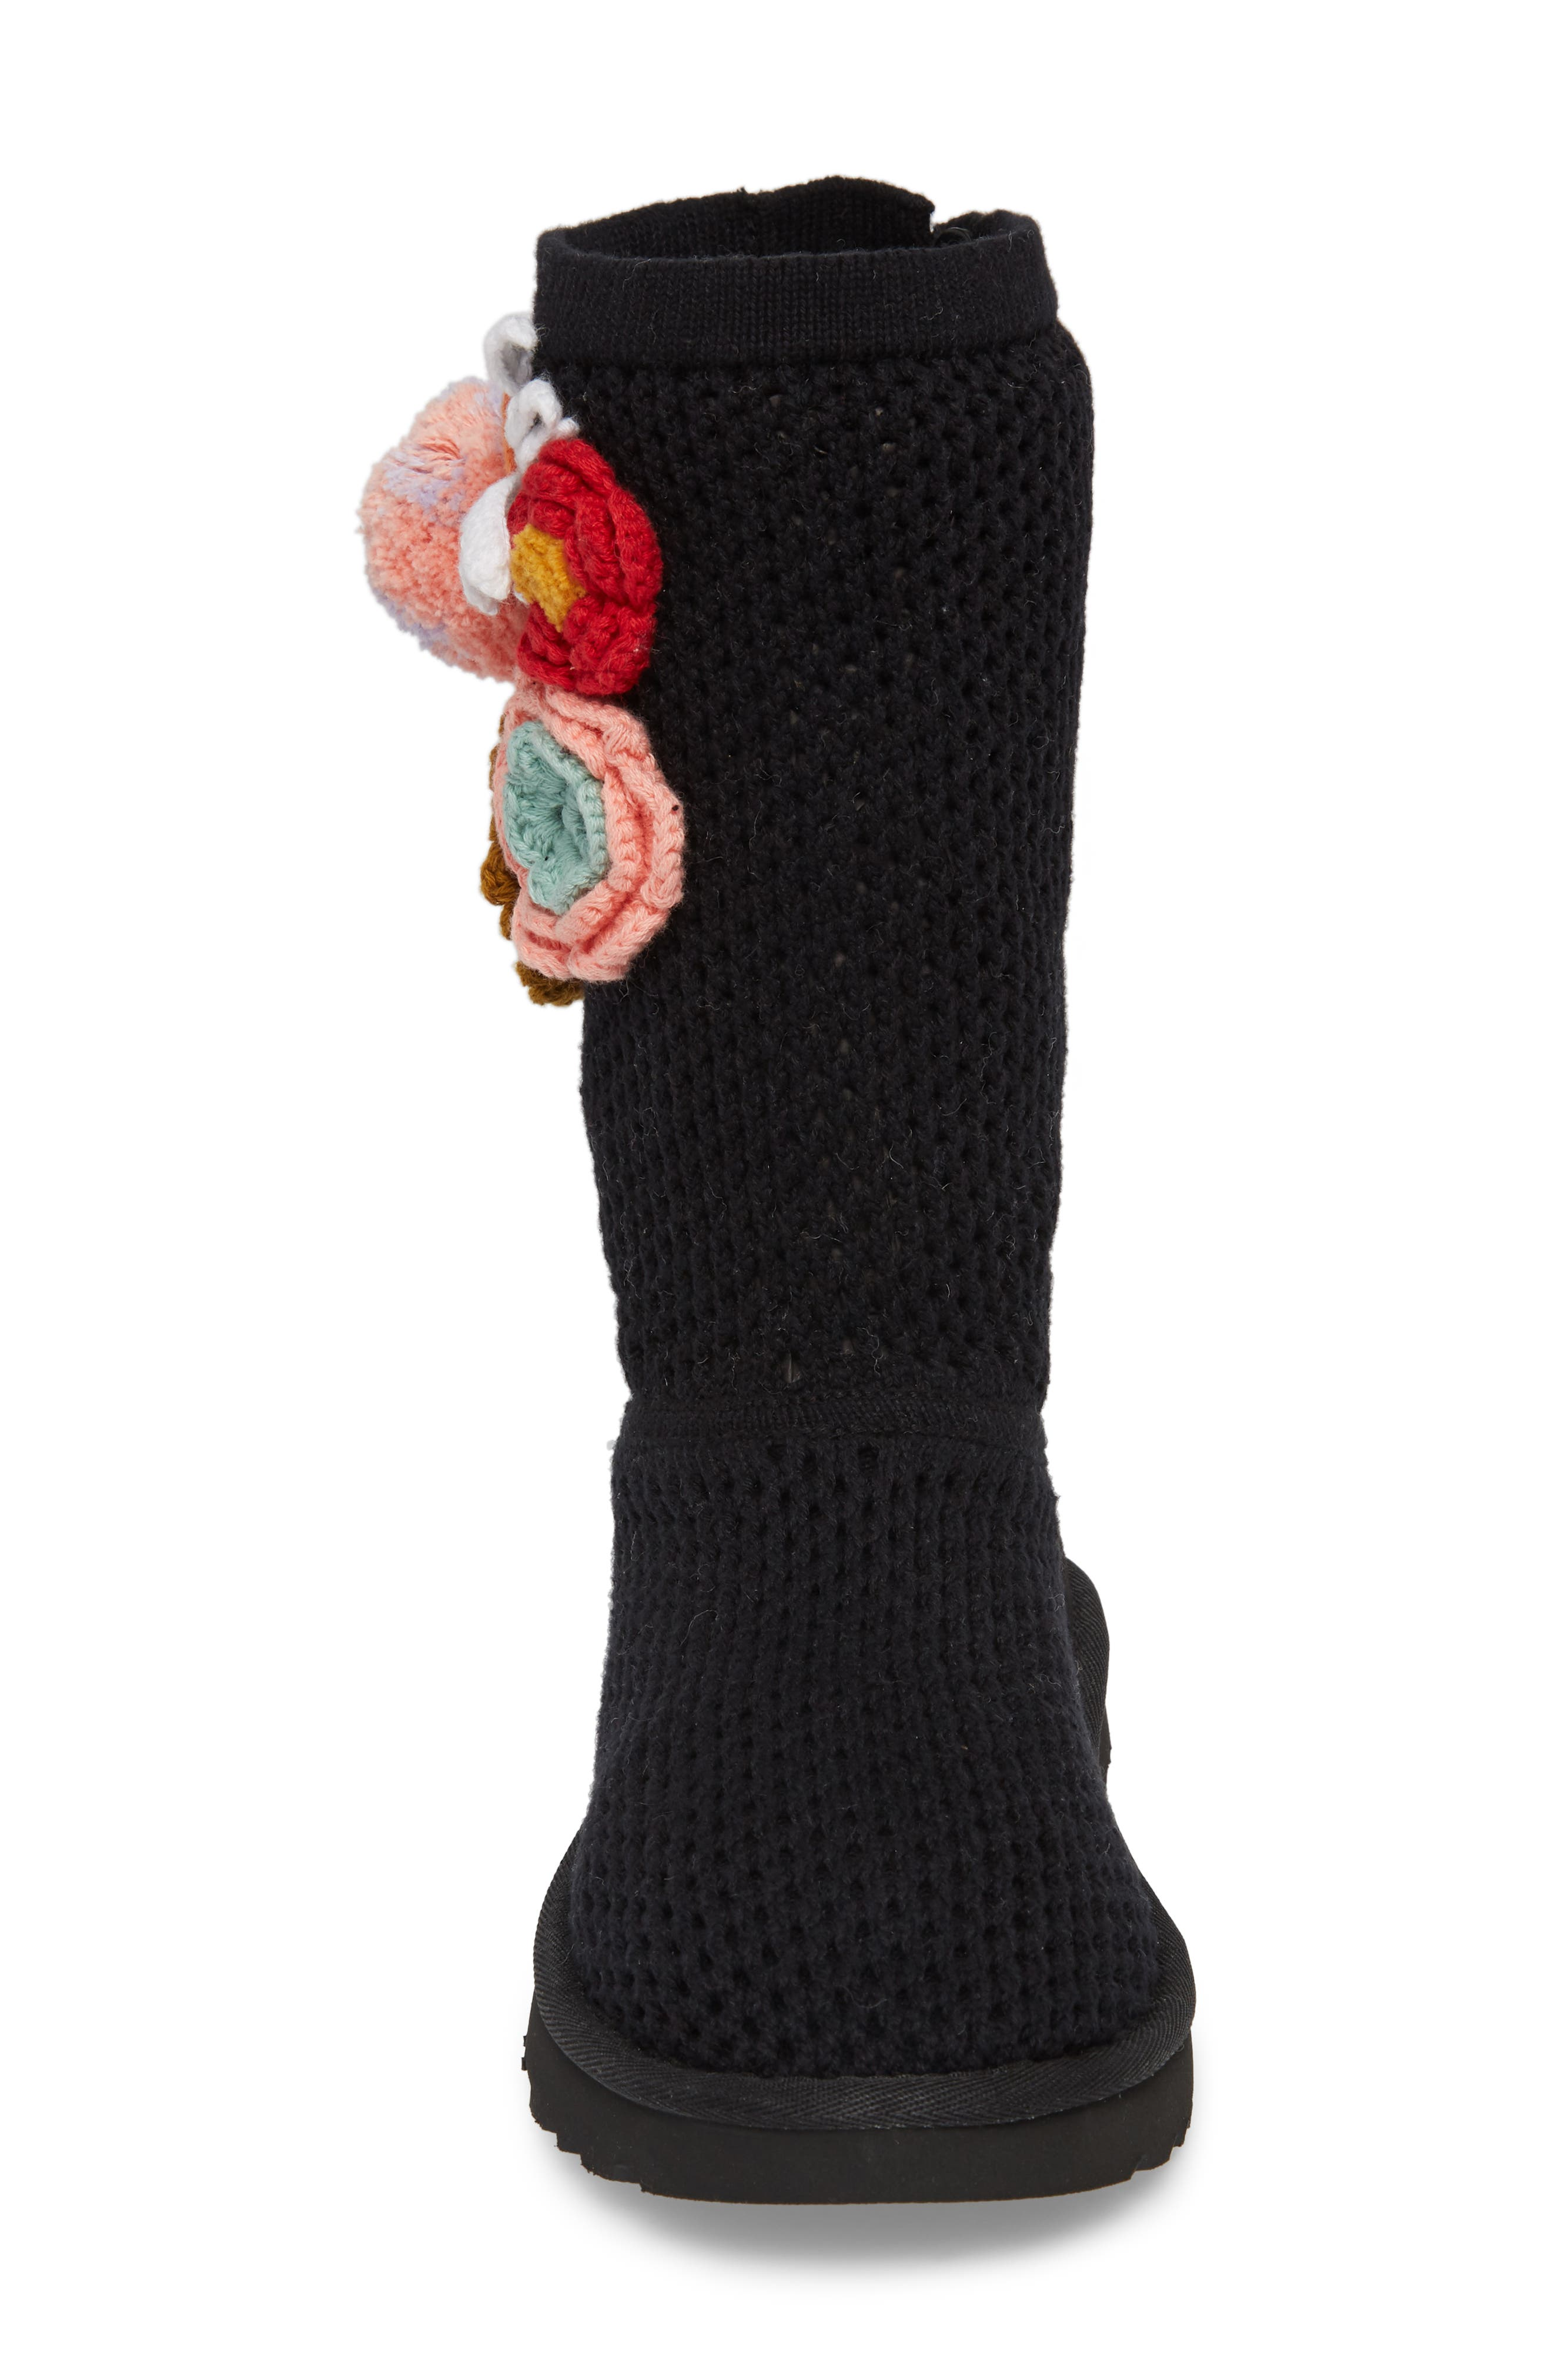 Crochet Classic Tall Boot,                             Alternate thumbnail 4, color,                             Black